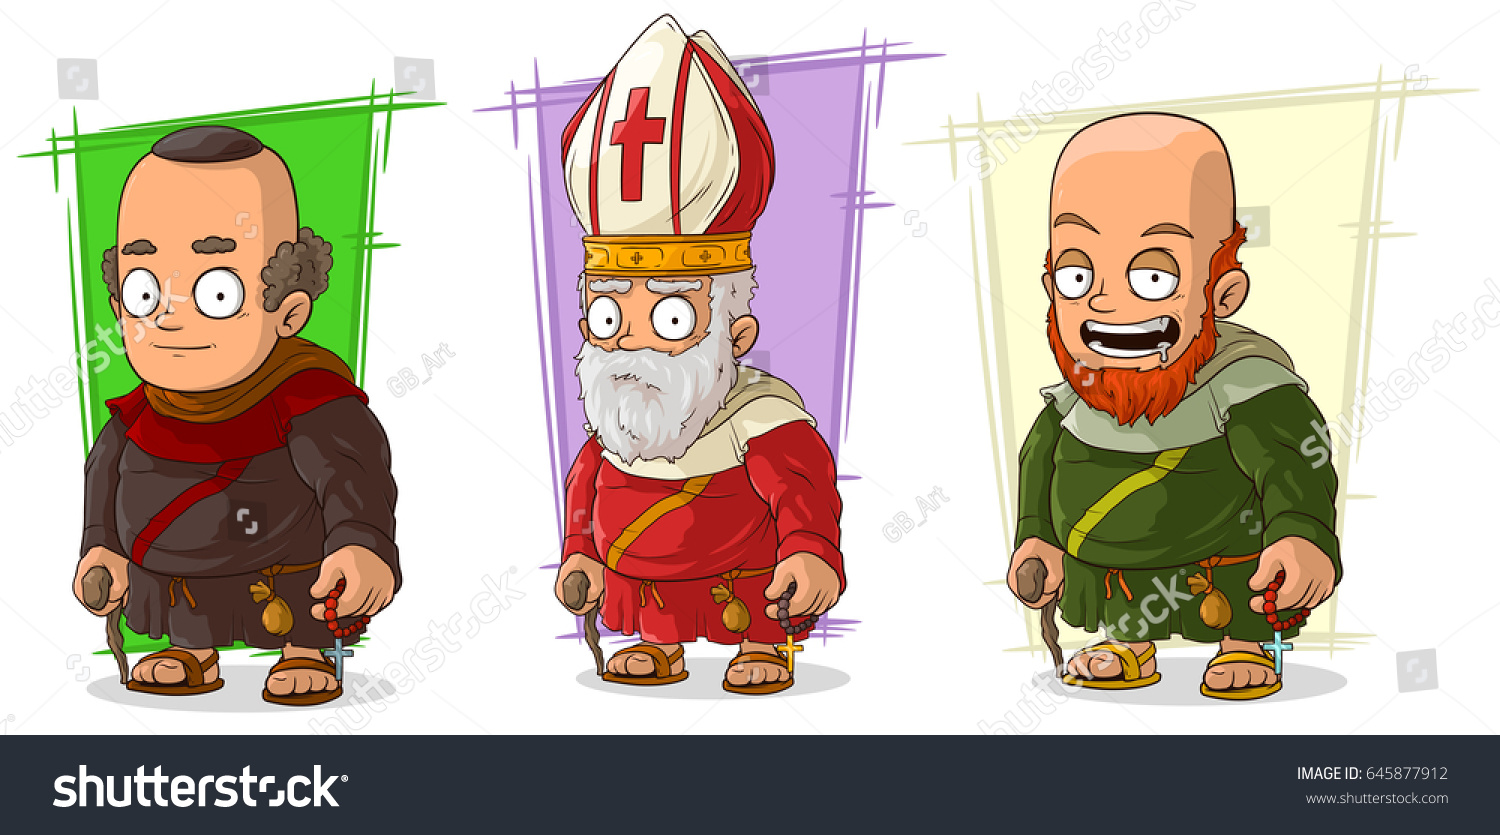 Stock Cuisine Saint Priest Cartoon Old Medieval Funny Monk Priest Stock Vector Royalty Free